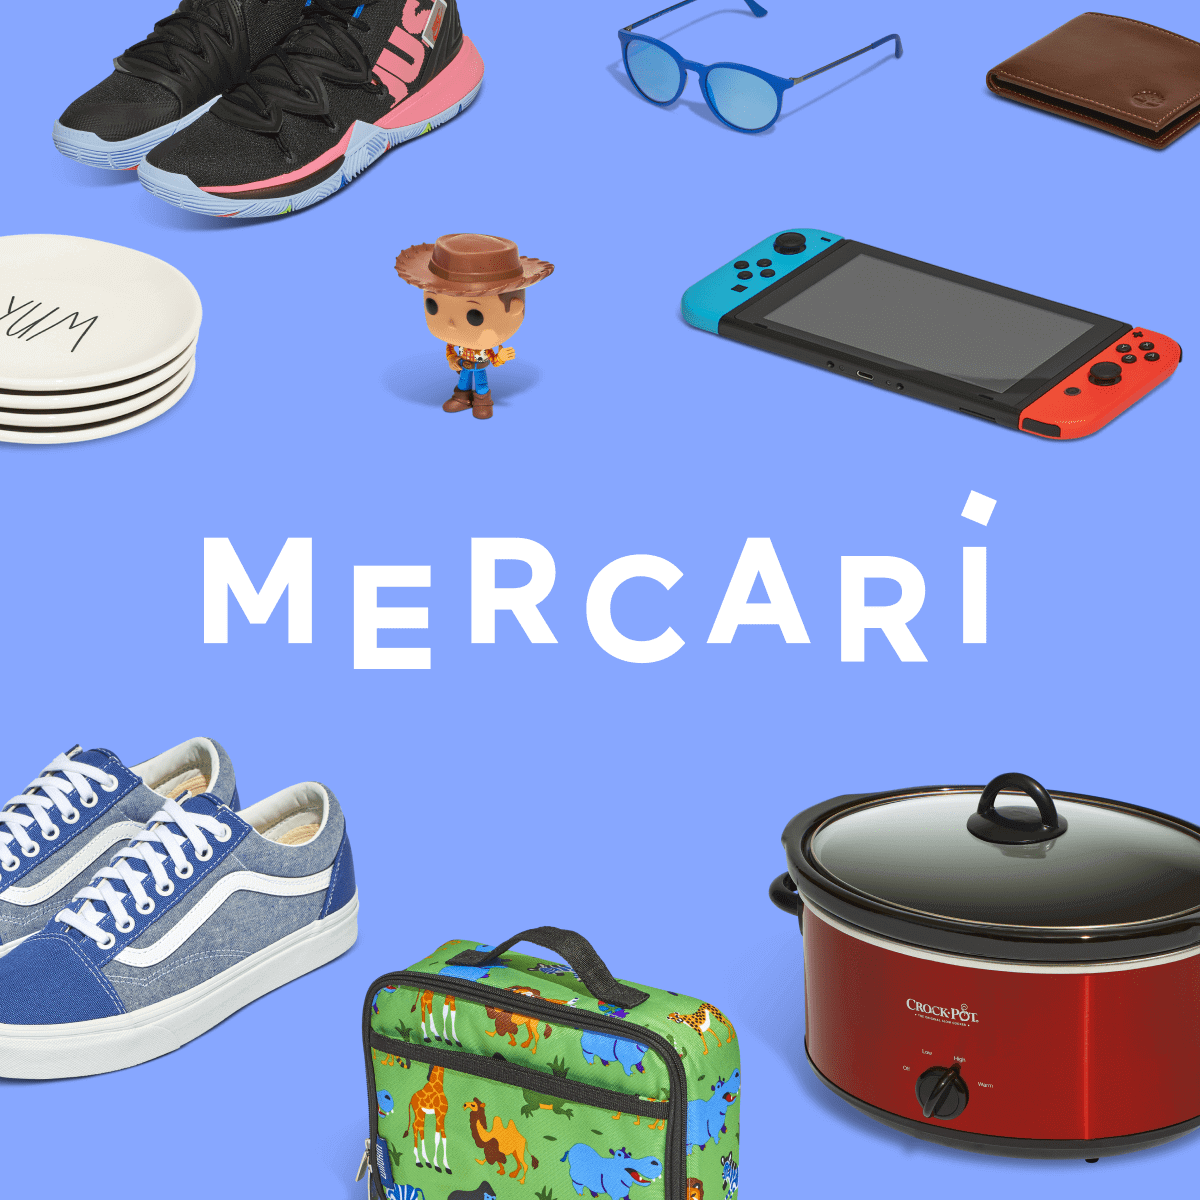 Mercari: The Selling App | Mercari